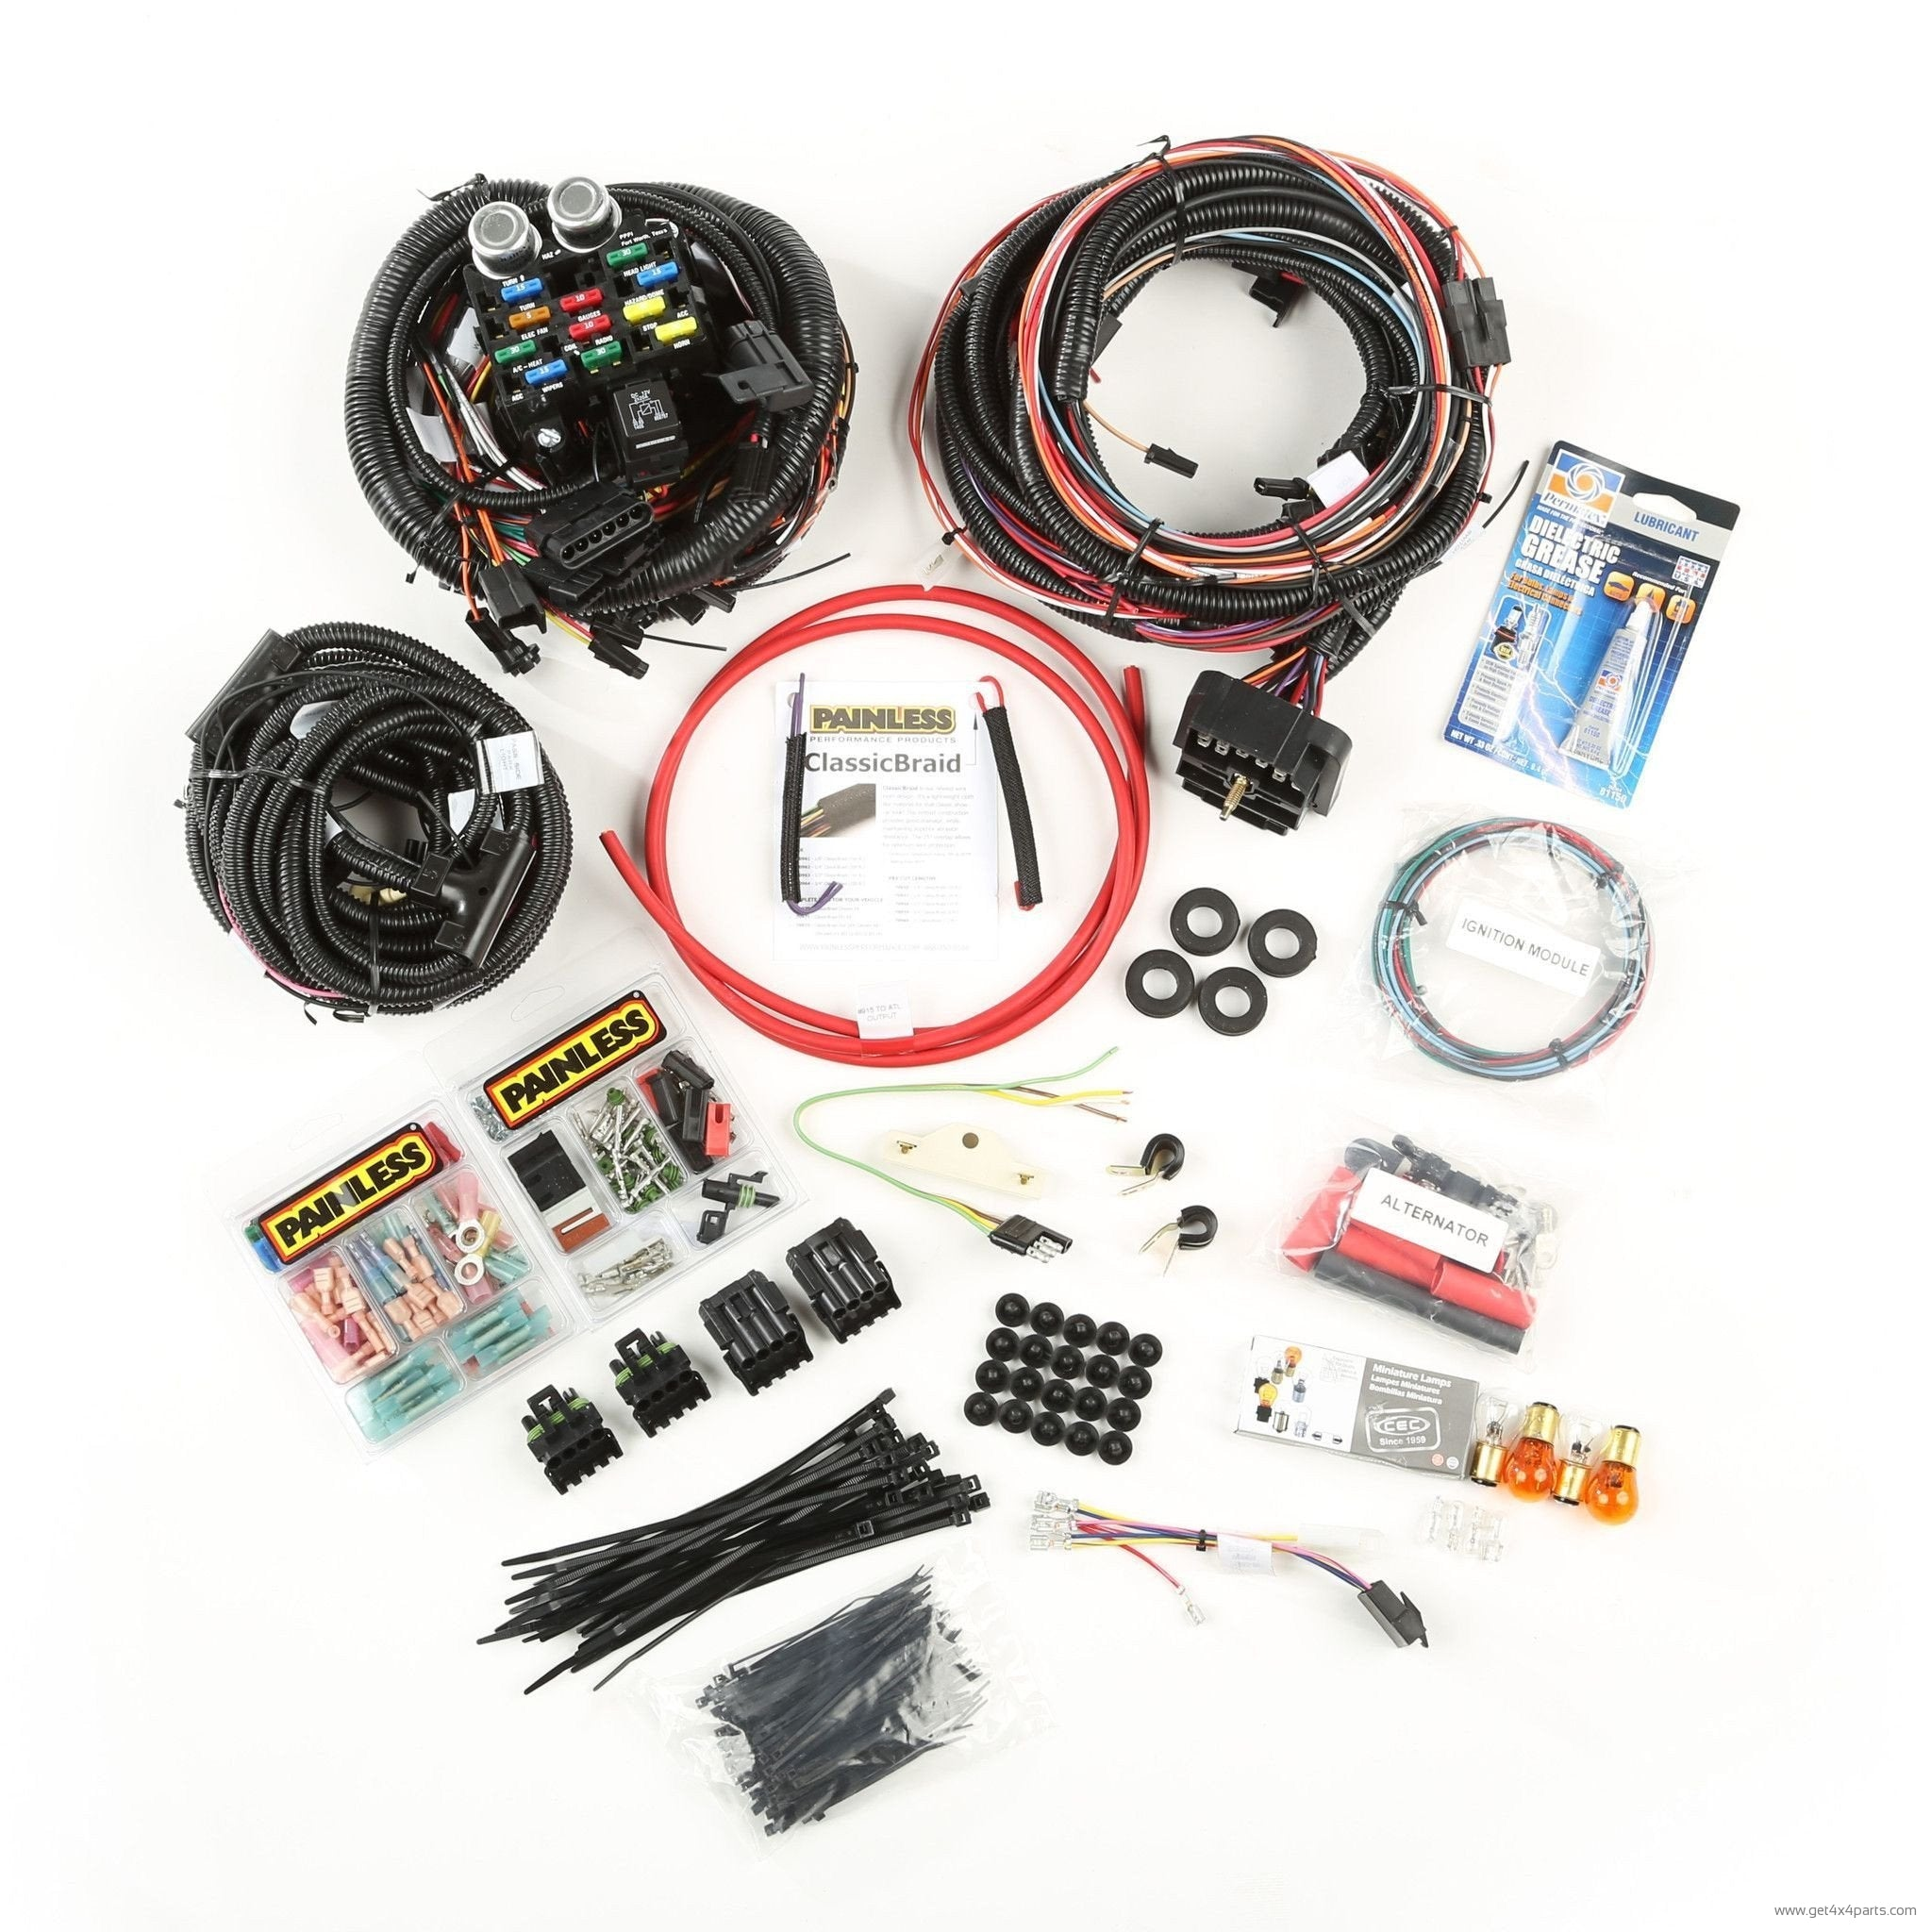 painless wiring harness 76 86 jeep cj models painless wiring harness 76 86 jeep cj?v\\\\\\\=1503517452 coleman 48203b876 mach internal wiring diagram coleman wiring  at eliteediting.co